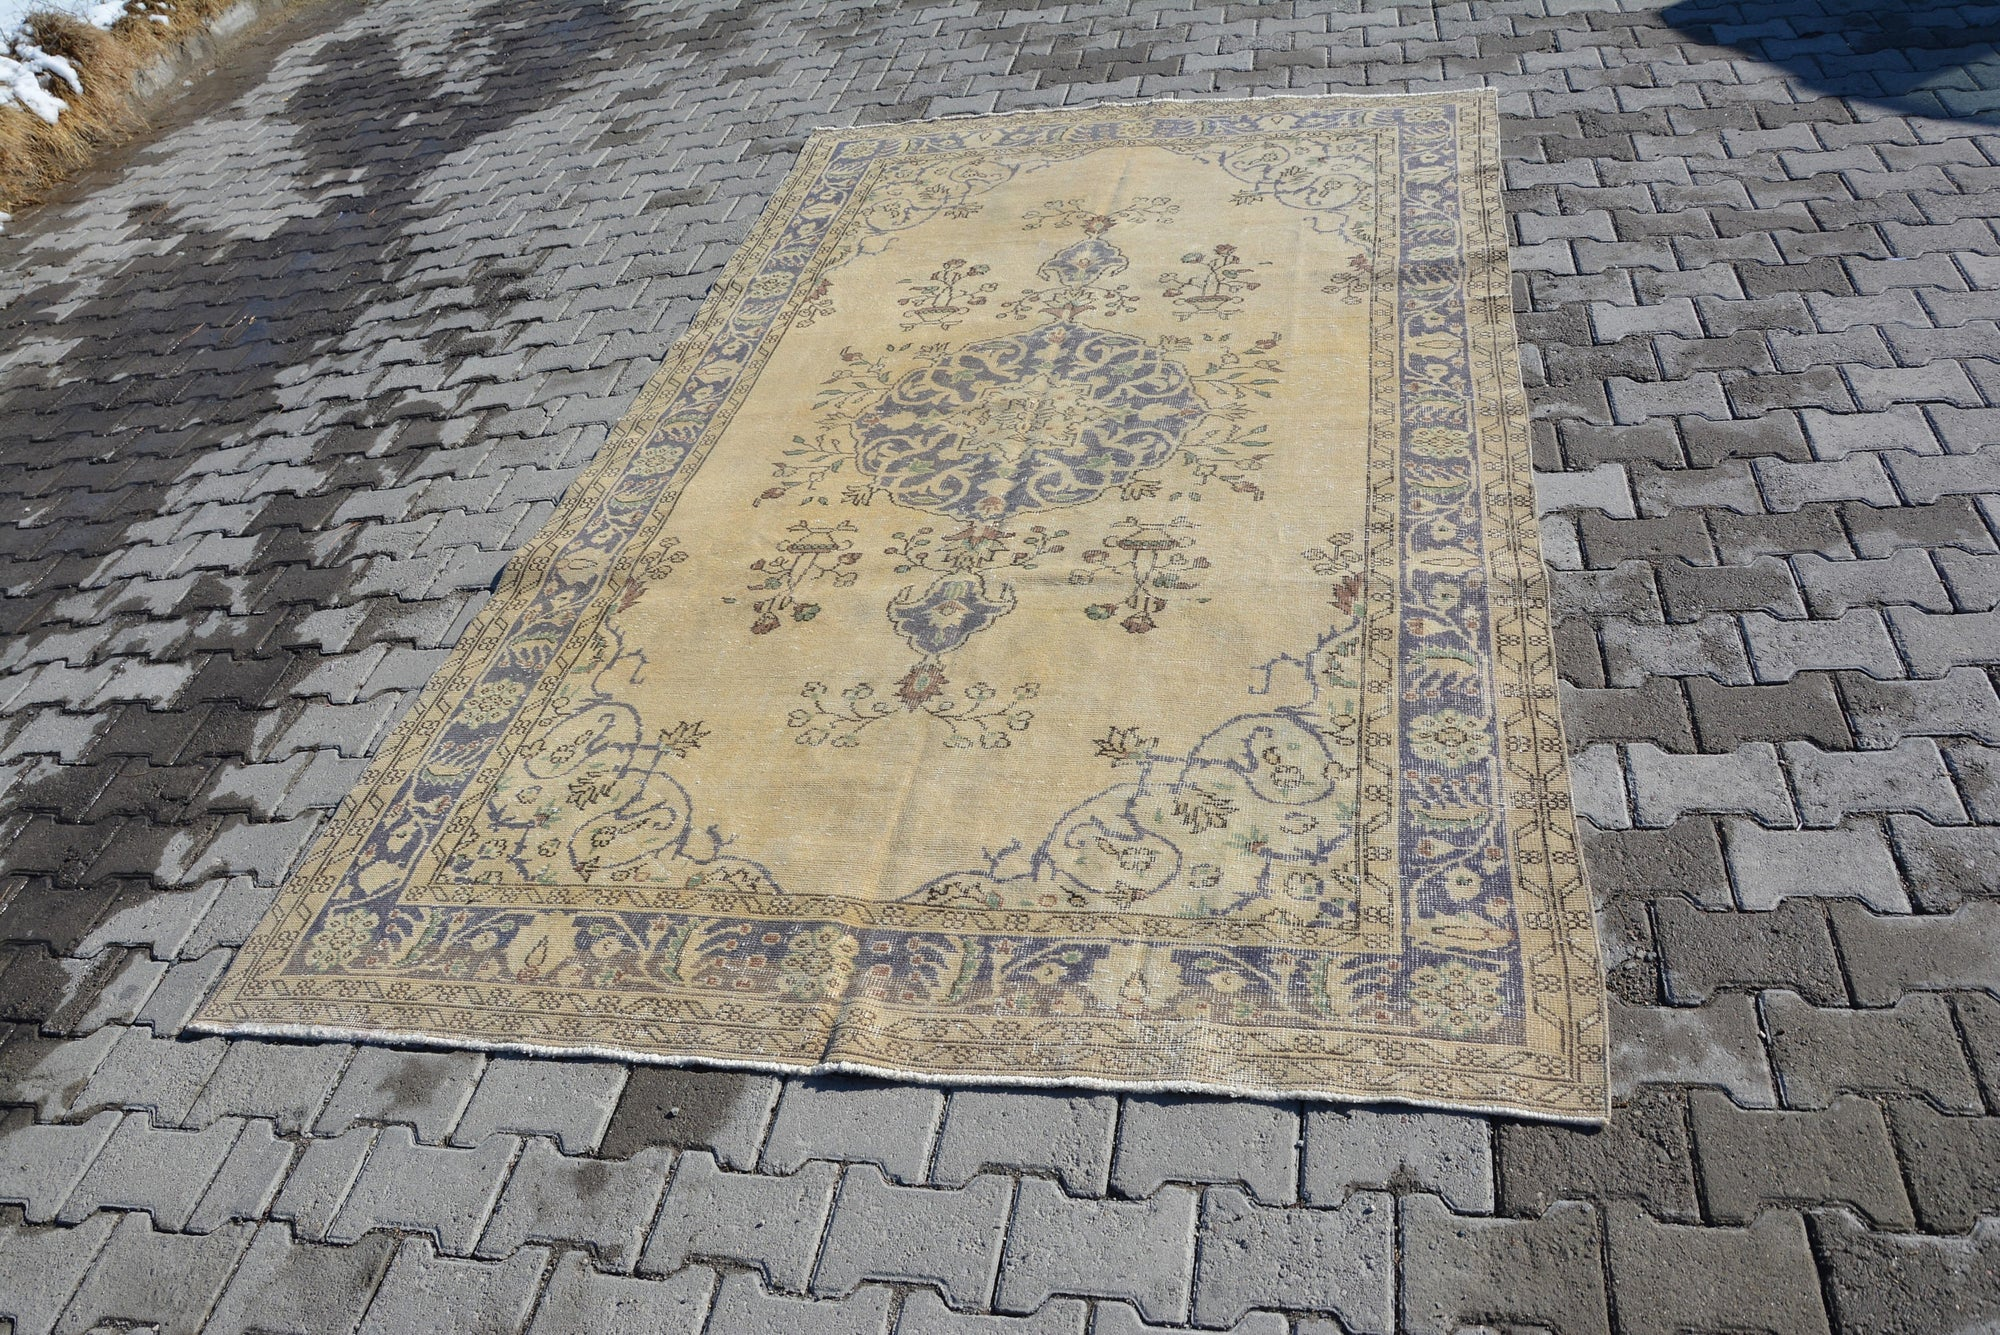 Muted Colors Rug, Handmade Rugs, Muted Rugs, Bohemian Rugs, Area Rugs, , Small Oushak Design Rug, Floor Vintage Rug, 9.9 x 5.8 Feet AG211